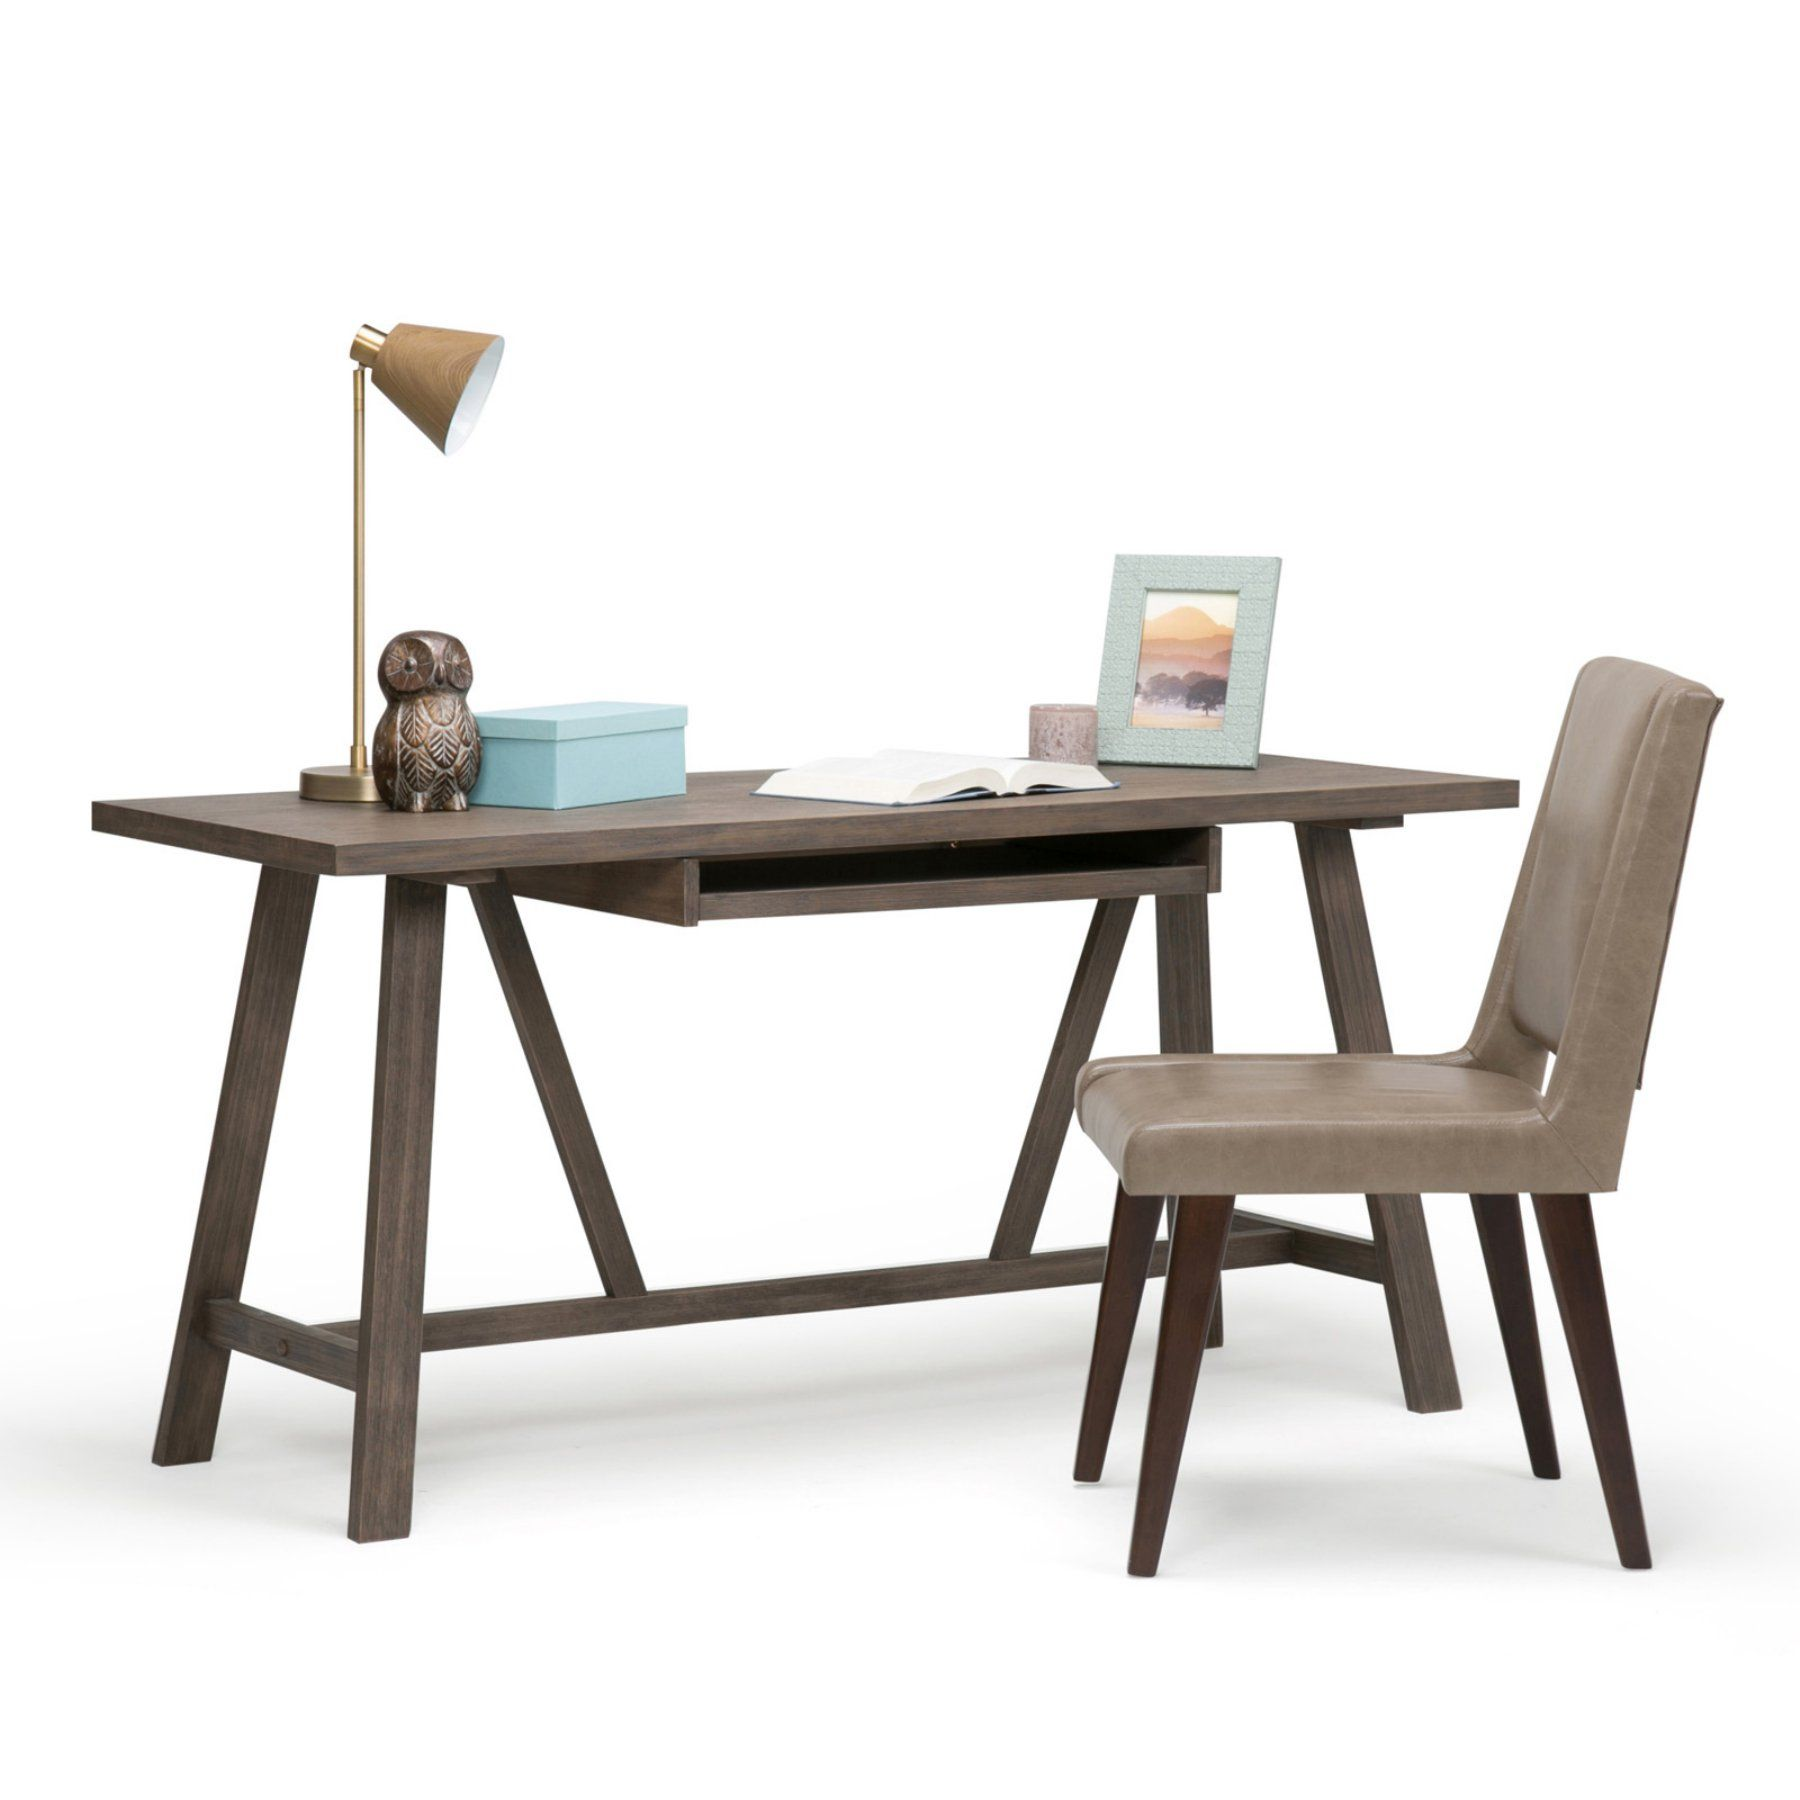 Simpli home dylan desk axcdln products